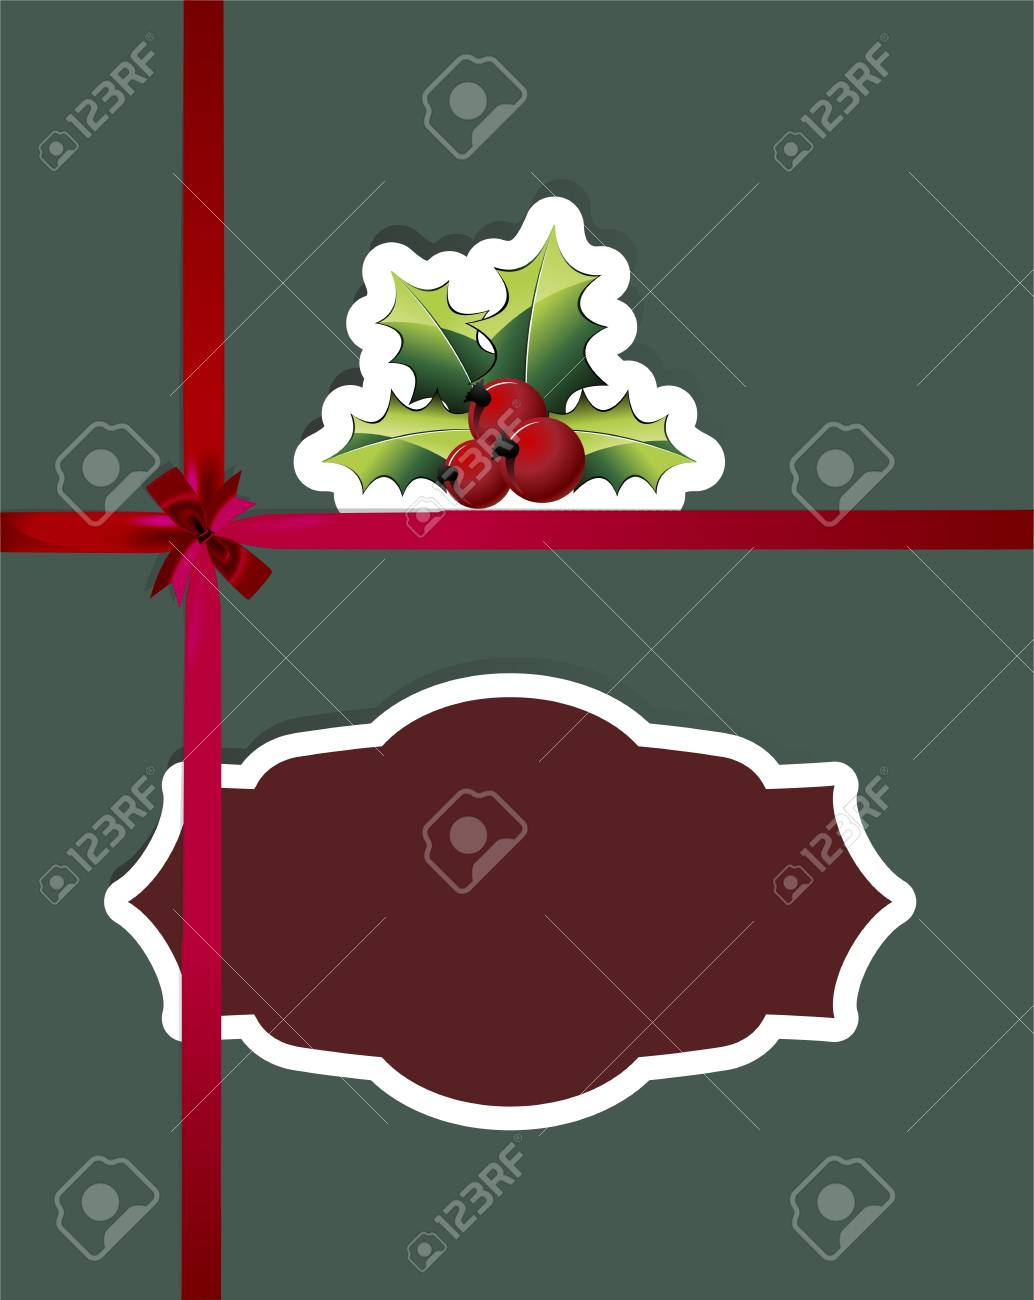 paper cut Christmas cards with holly berry and red ribbons Stock Vector - 14813027